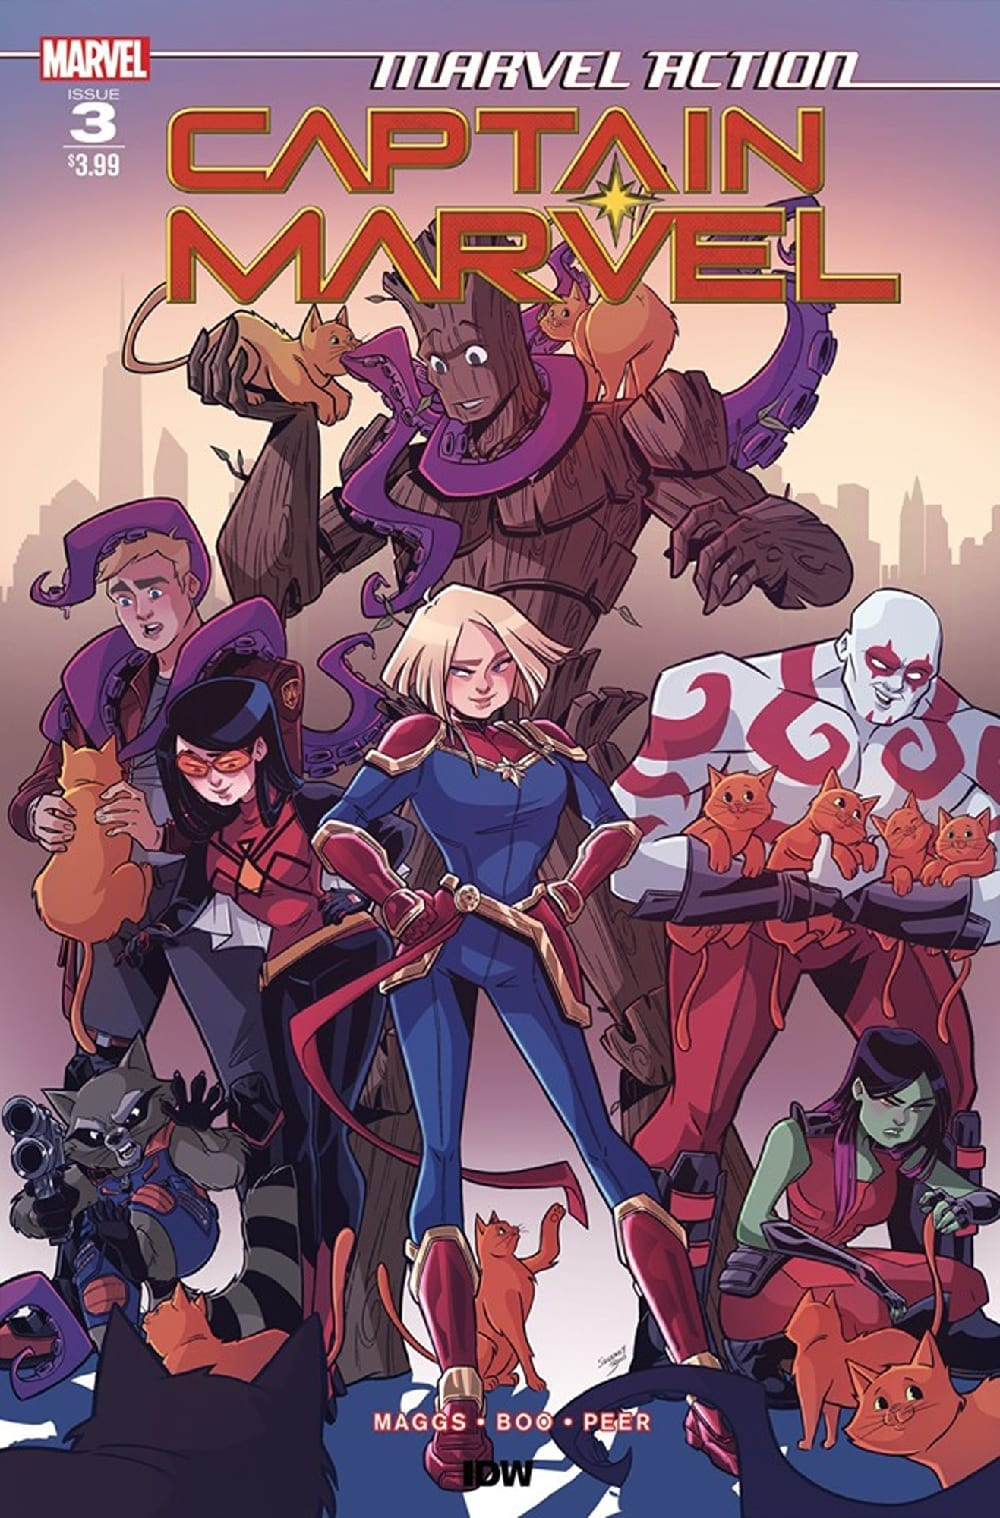 A Whole New Flerkin Problem MARVEL ACTION: CAPTAIN MARVEL #3 1